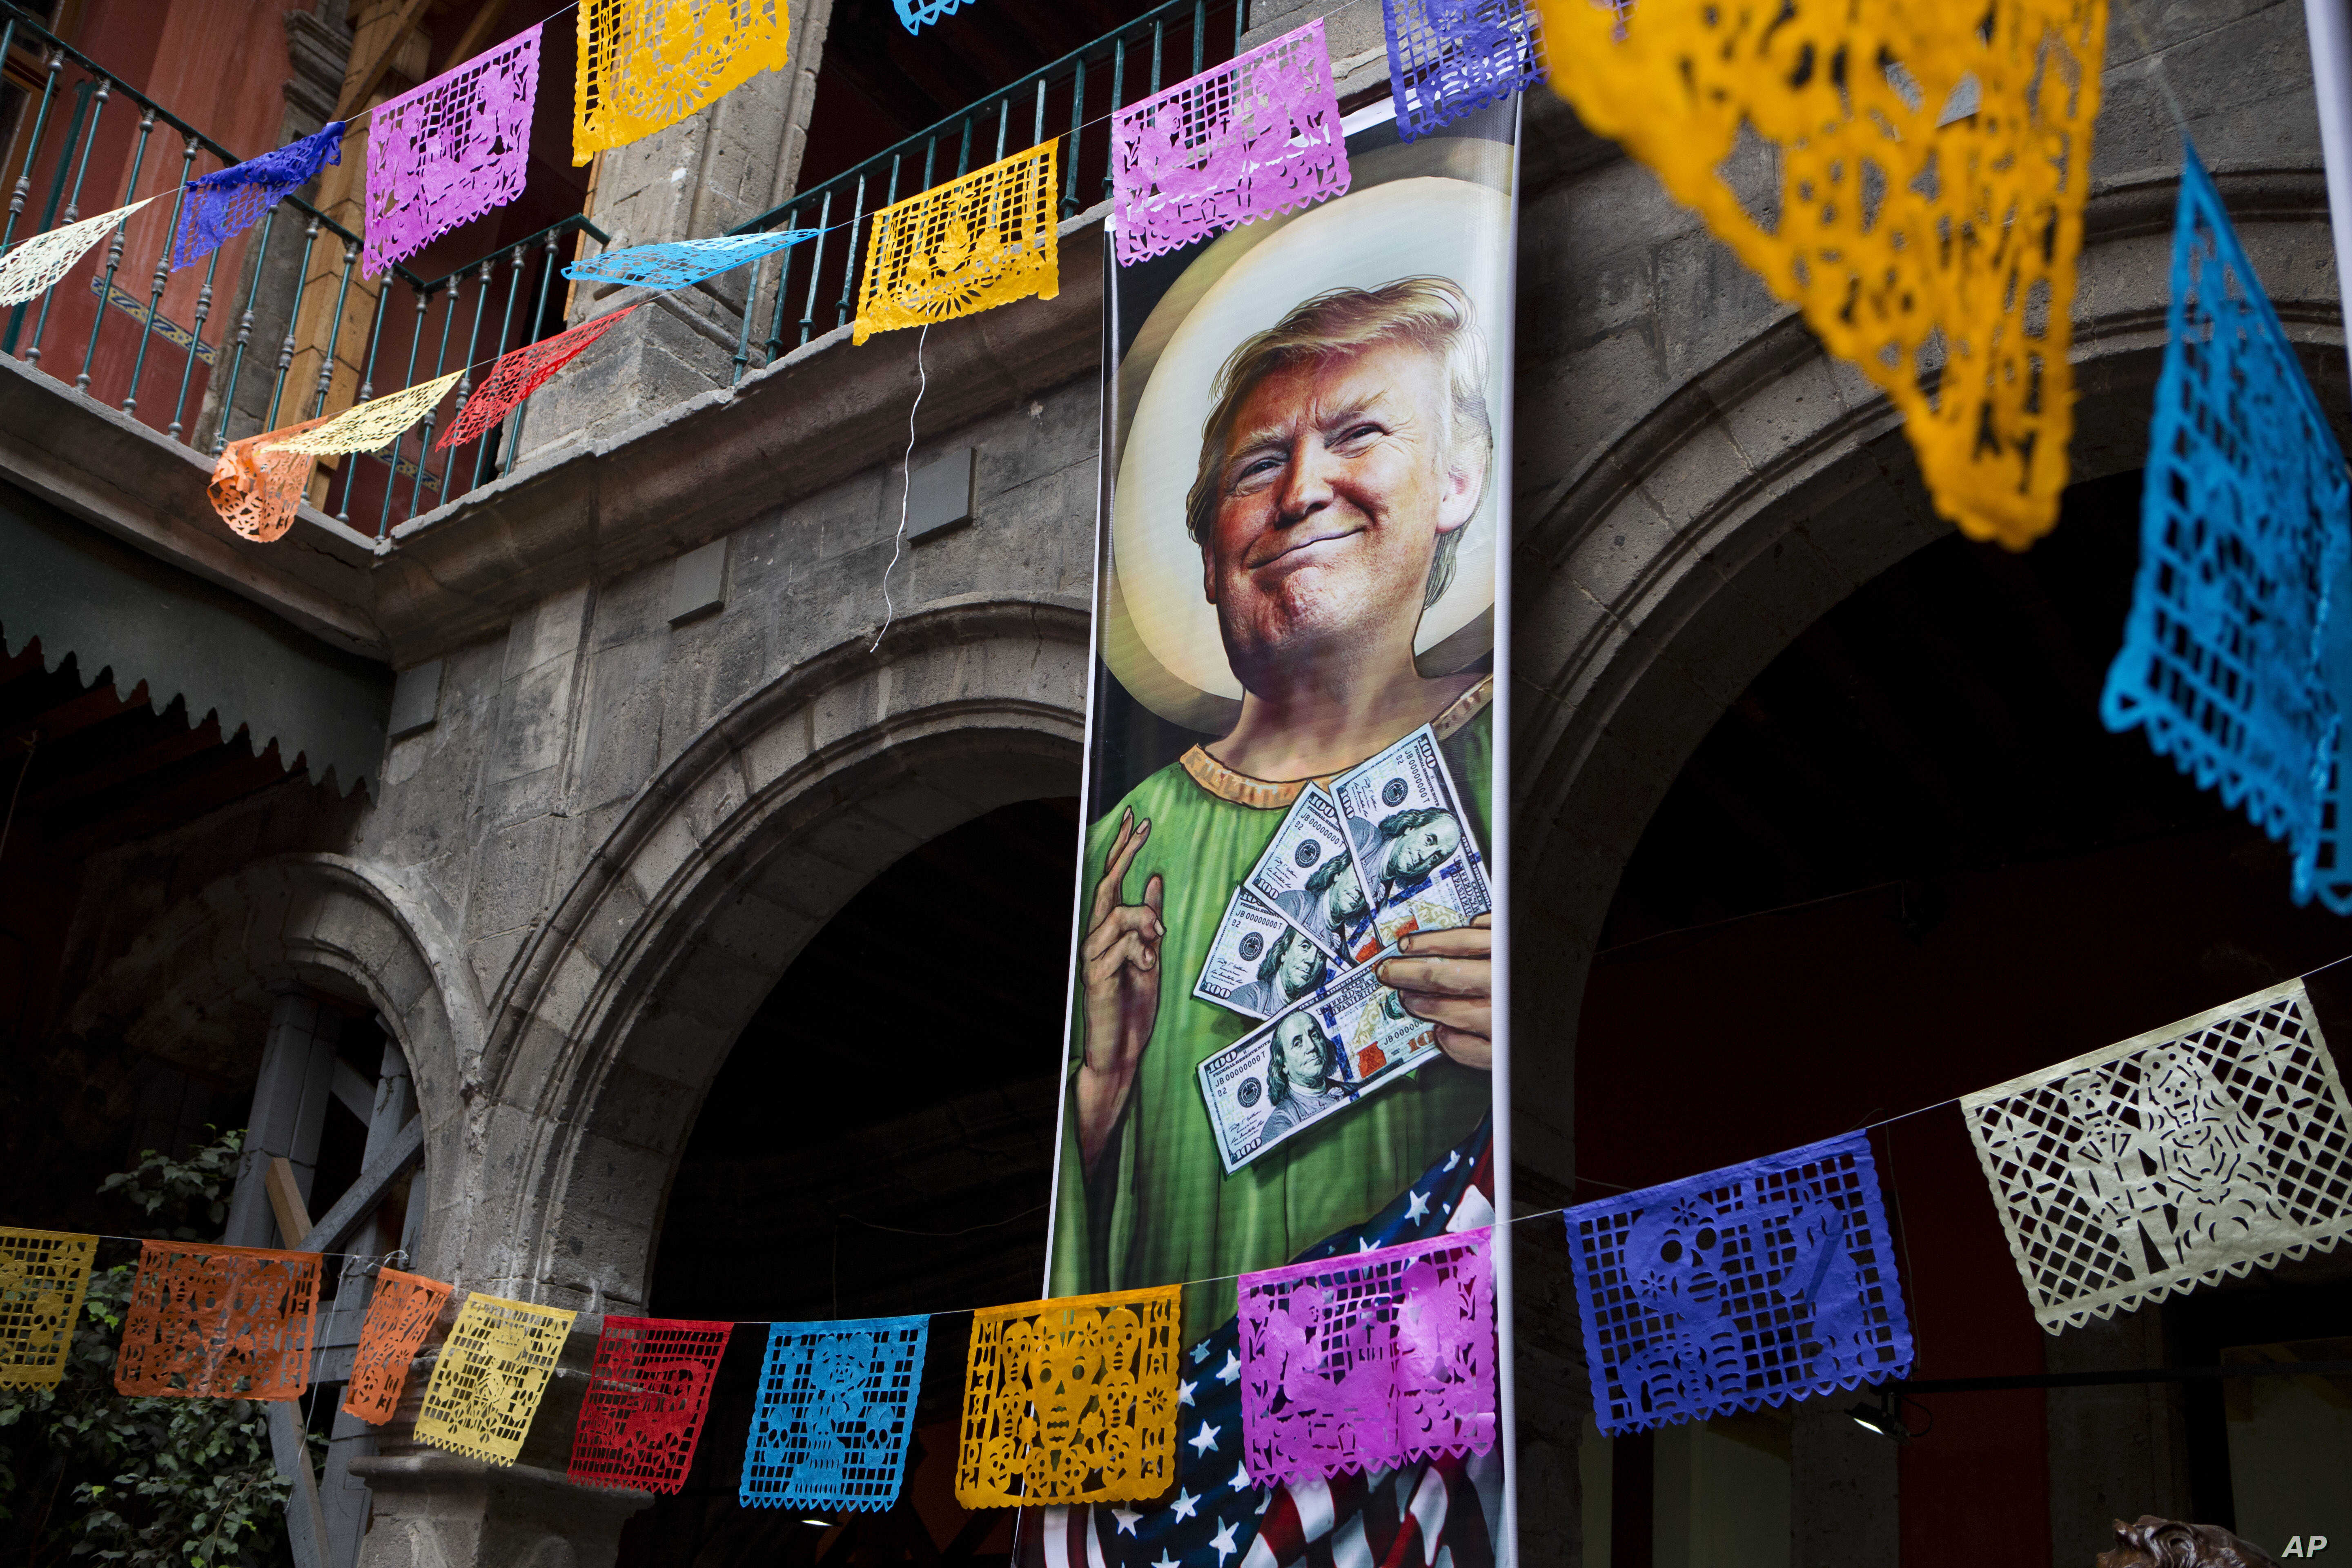 FILE - A banner with an image of Donald Trump promotes an exhibition that features dozens of works by Mexican and international cartoonists, mocking among other things the U.S. president's derogatory statements about Mexicans and his plans to build a...